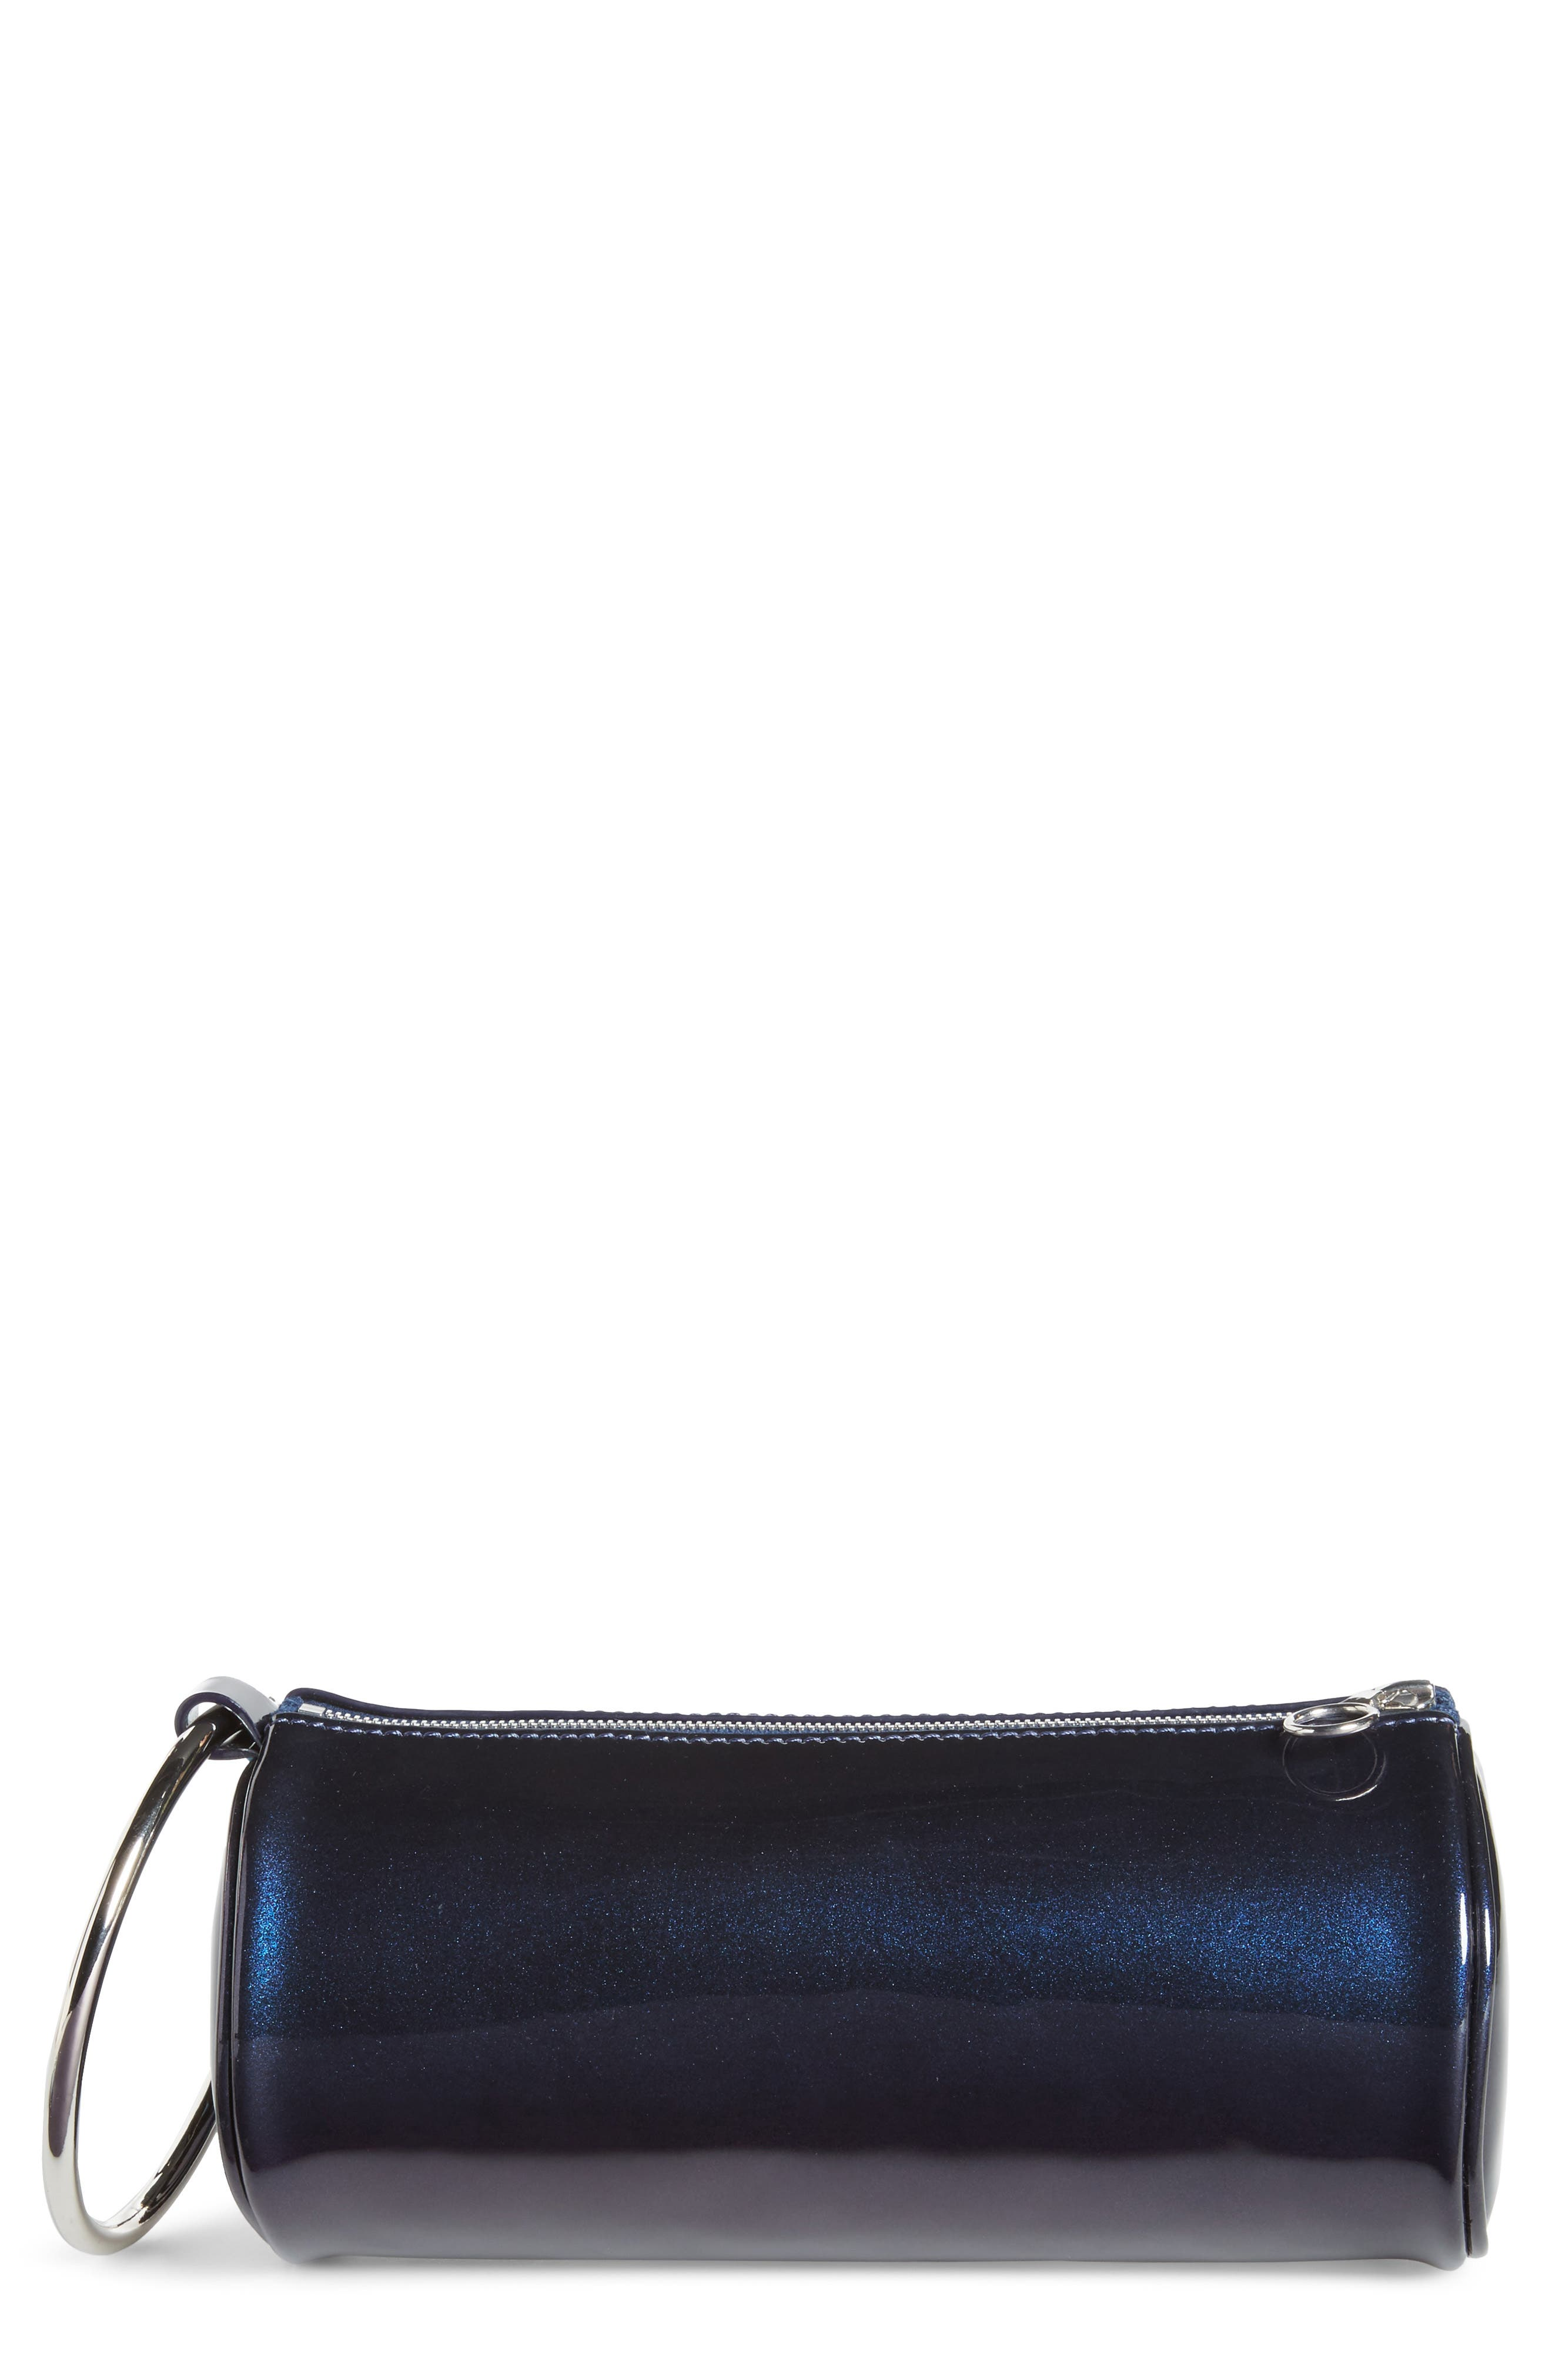 KARA Iridescent Leather Duffel Wristlet Clutch